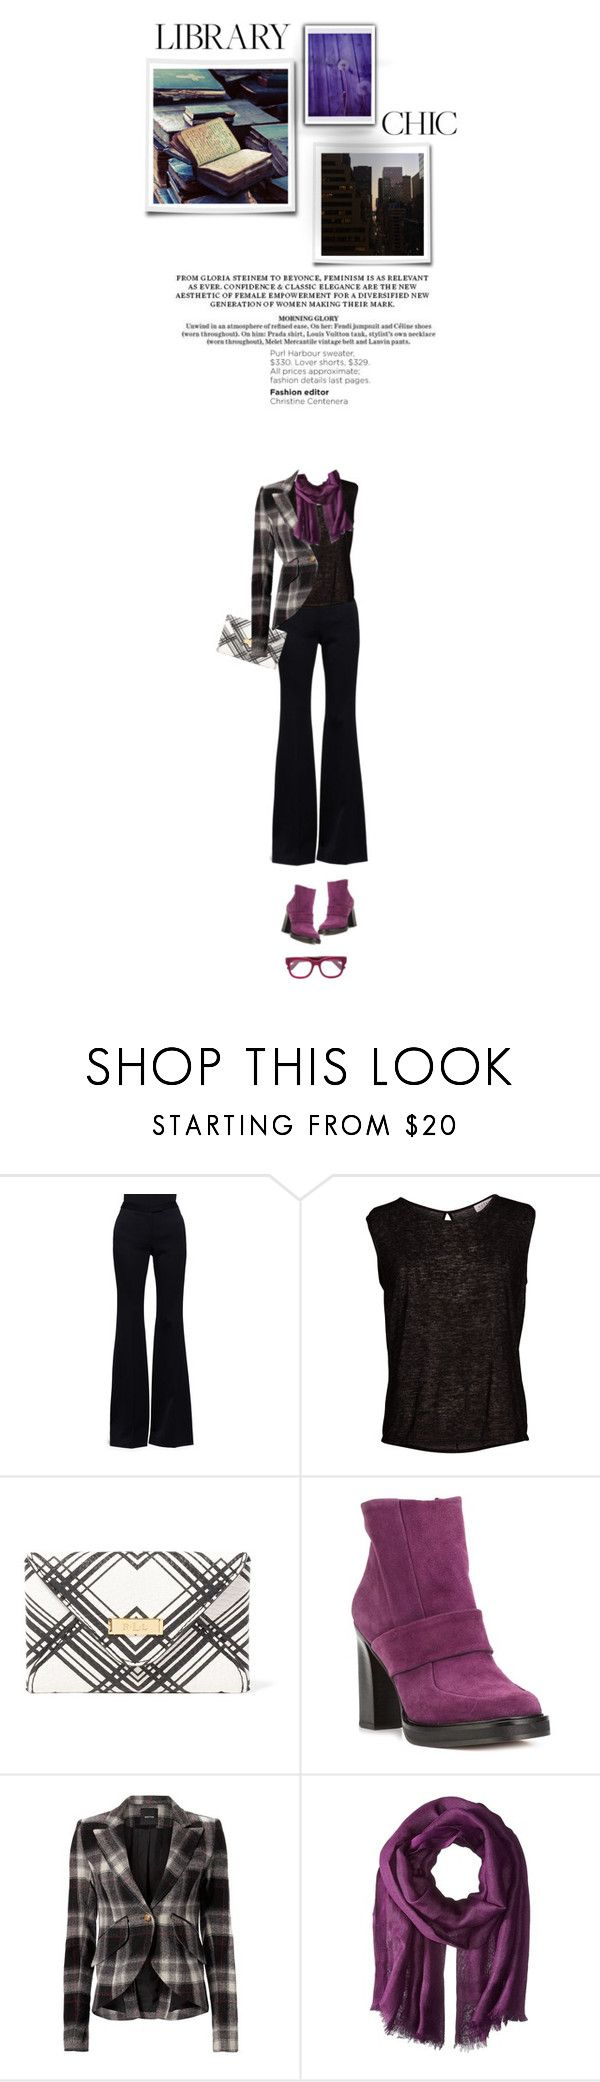 """""""study session"""" by paperdollsq ❤ liked on Polyvore featuring Alexander McQueen, Velvet by Graham & Spencer, Lauren Ralph Lauren, Carven, Smythe, Love Quotes Scarves, Gucci and librarychic"""